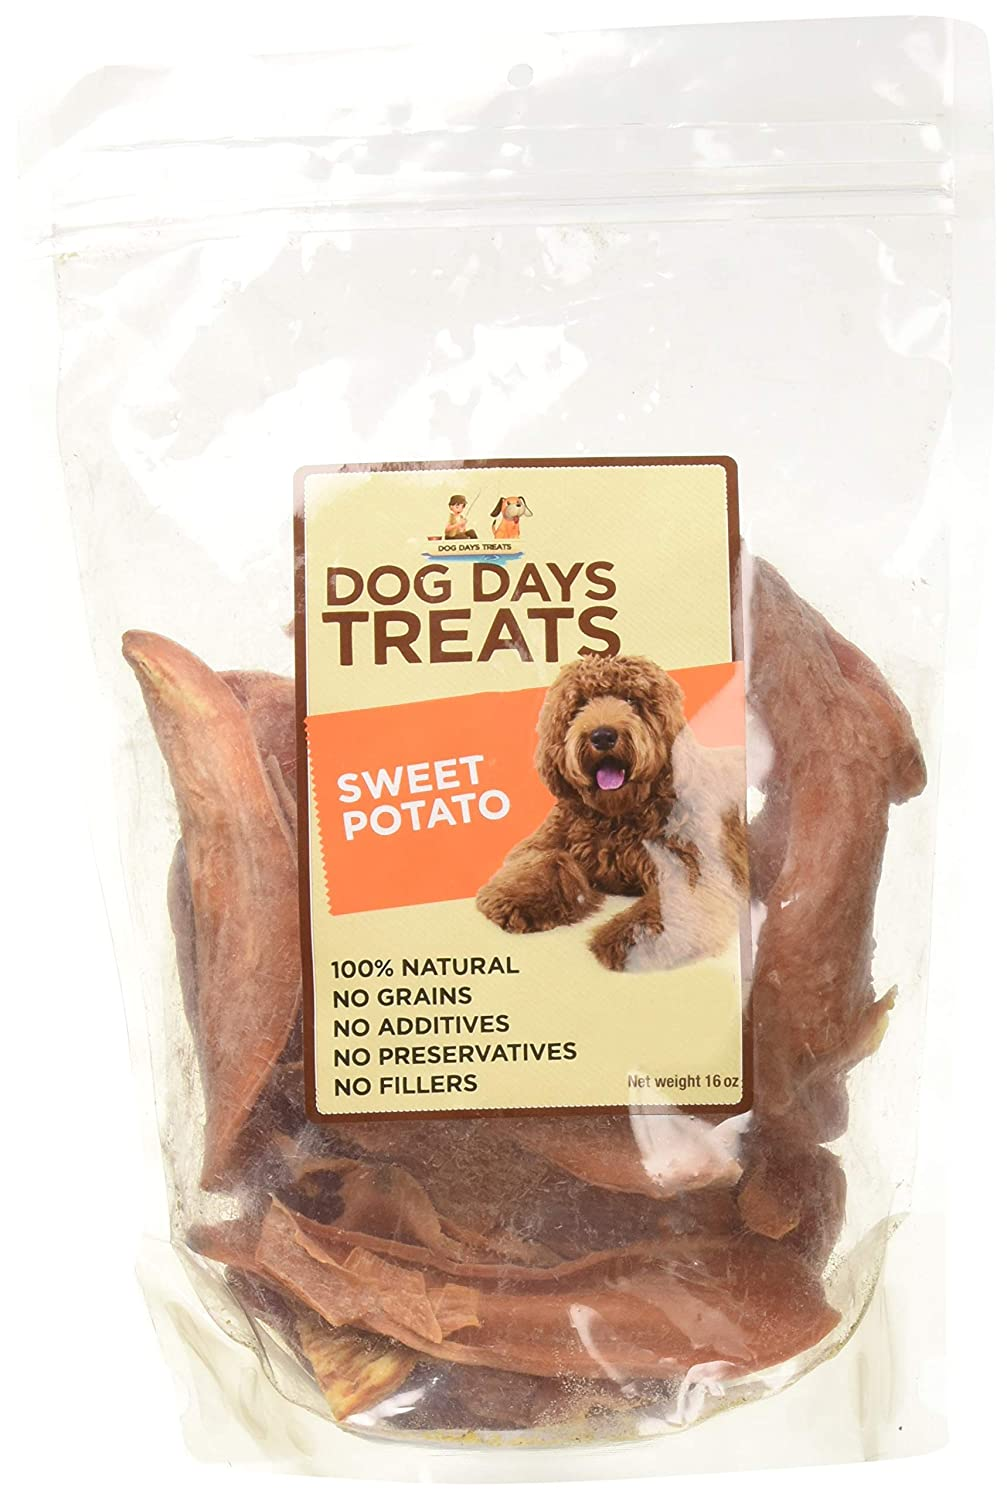 Dog Days Treats 100% All Natural Sweet Potato Made from North Carolina, 16 oz.